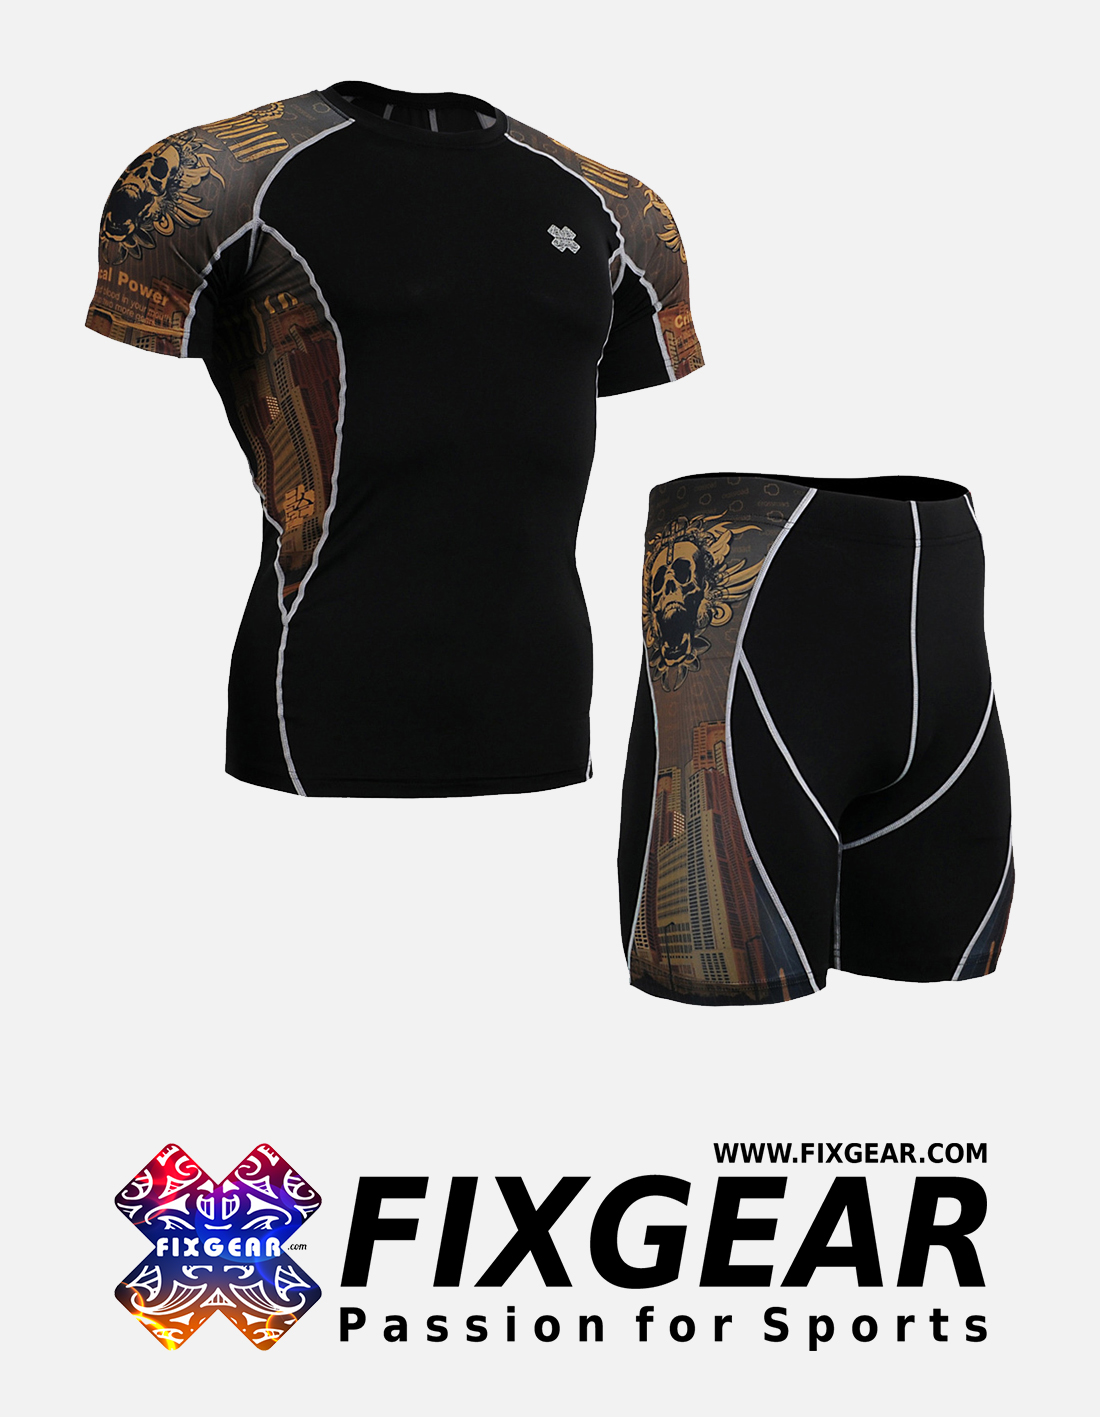 FIXGEAR C2S-P2S-B27 Set Compression Base Layer Shirt & Compression Drawer Shorts